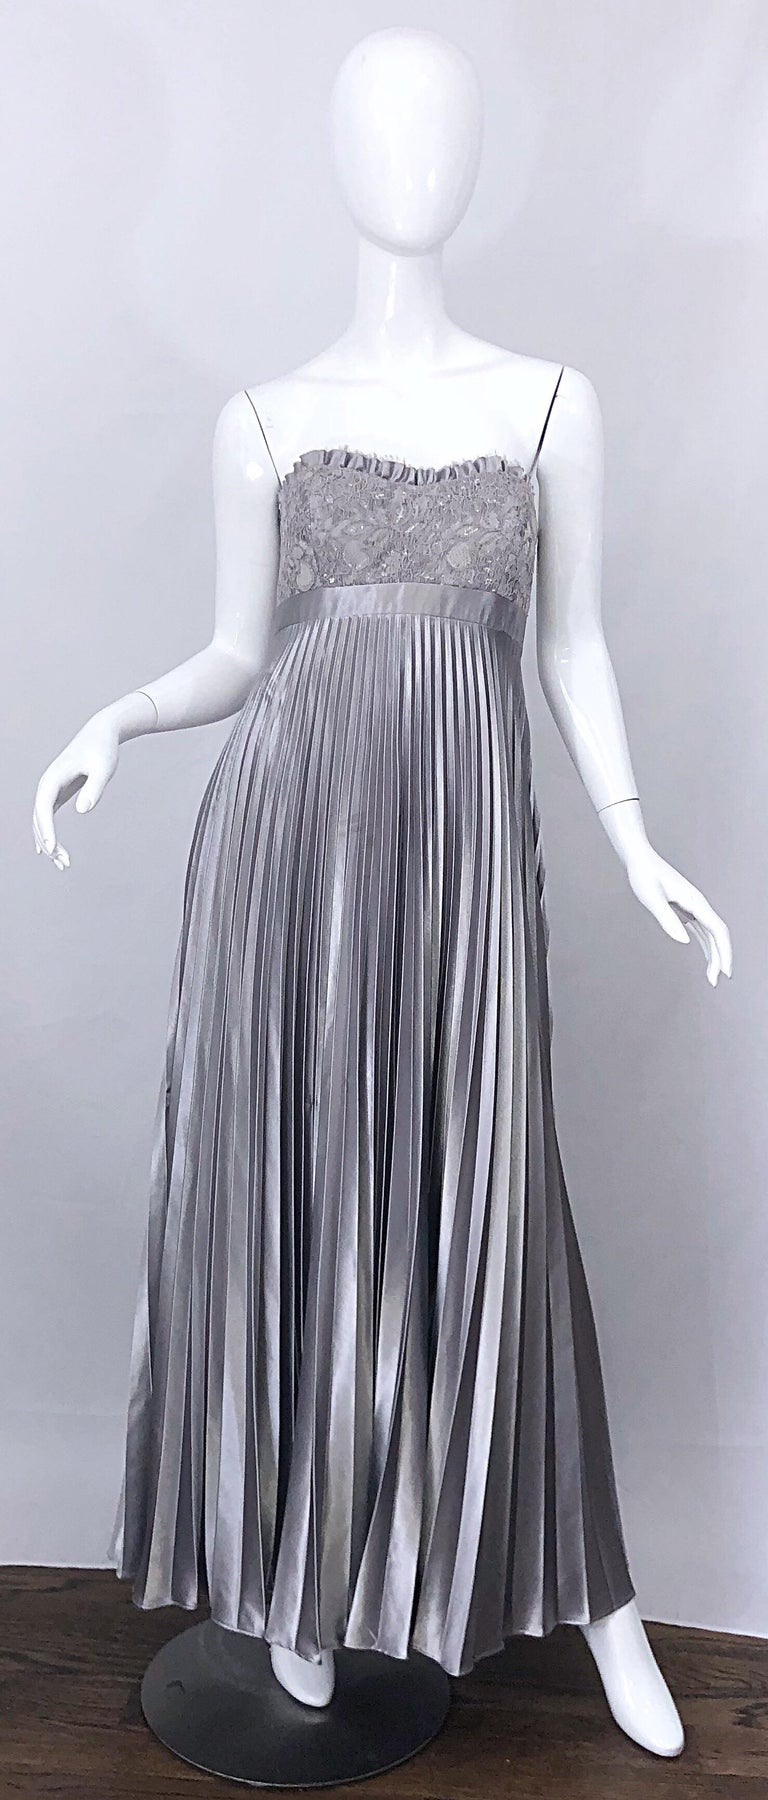 Beautiful vintage 90s BADGLEY MISCHKA Couture quality metallic silver gray strapless evening gown! Features a fitted boned lace bodice with silver sequins hand-sewn throughout. Flattering and forgiving empire waist accordian pleated skirt. Hidden